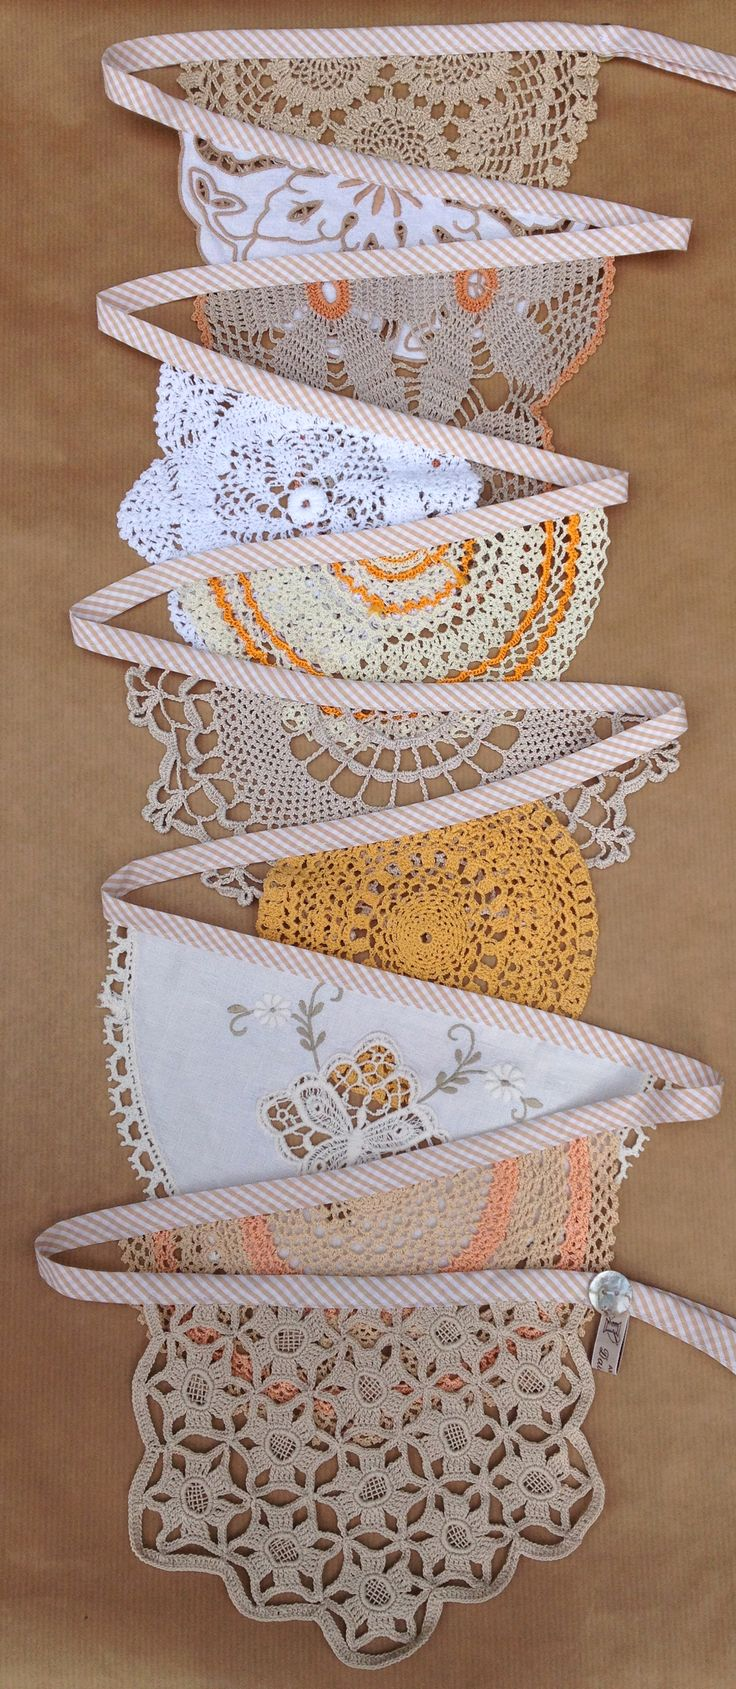 Vintage Doily Wedding Bunting Garland (Grande Apricot Rose) Handmade Crochet in Peach, Orange, Beige, White and Cream! http://www.etsy.com/uk/shop/DaisiesBlueShop